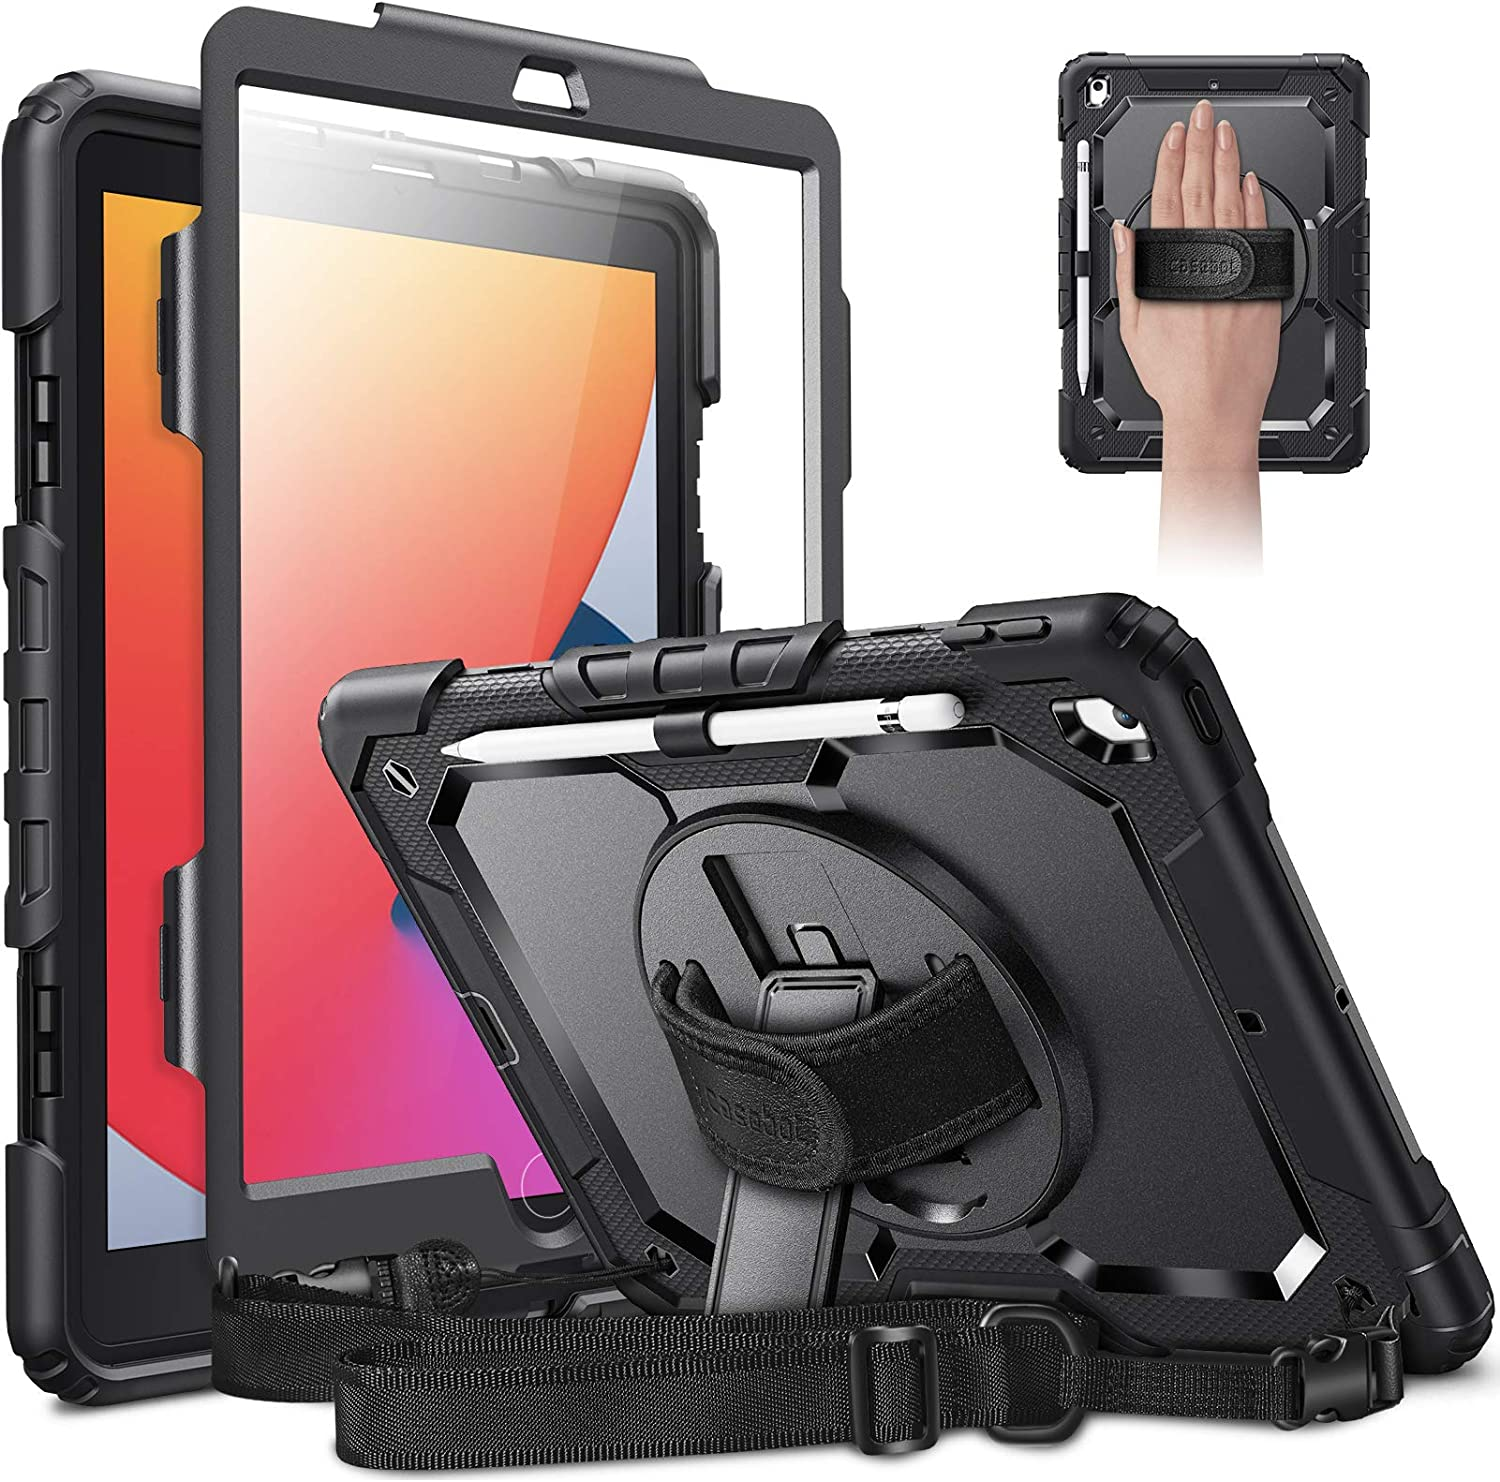 CaseBot Case for iPad 8th Generation 2020 / 7th Gen 2019 10.2 with Screen Protector, [360° Rotating Kickstand] Rugged Heavy Duty Hybrid Shockproof Cover with Hand Shoulder Strap, Pencil Holder (Black)